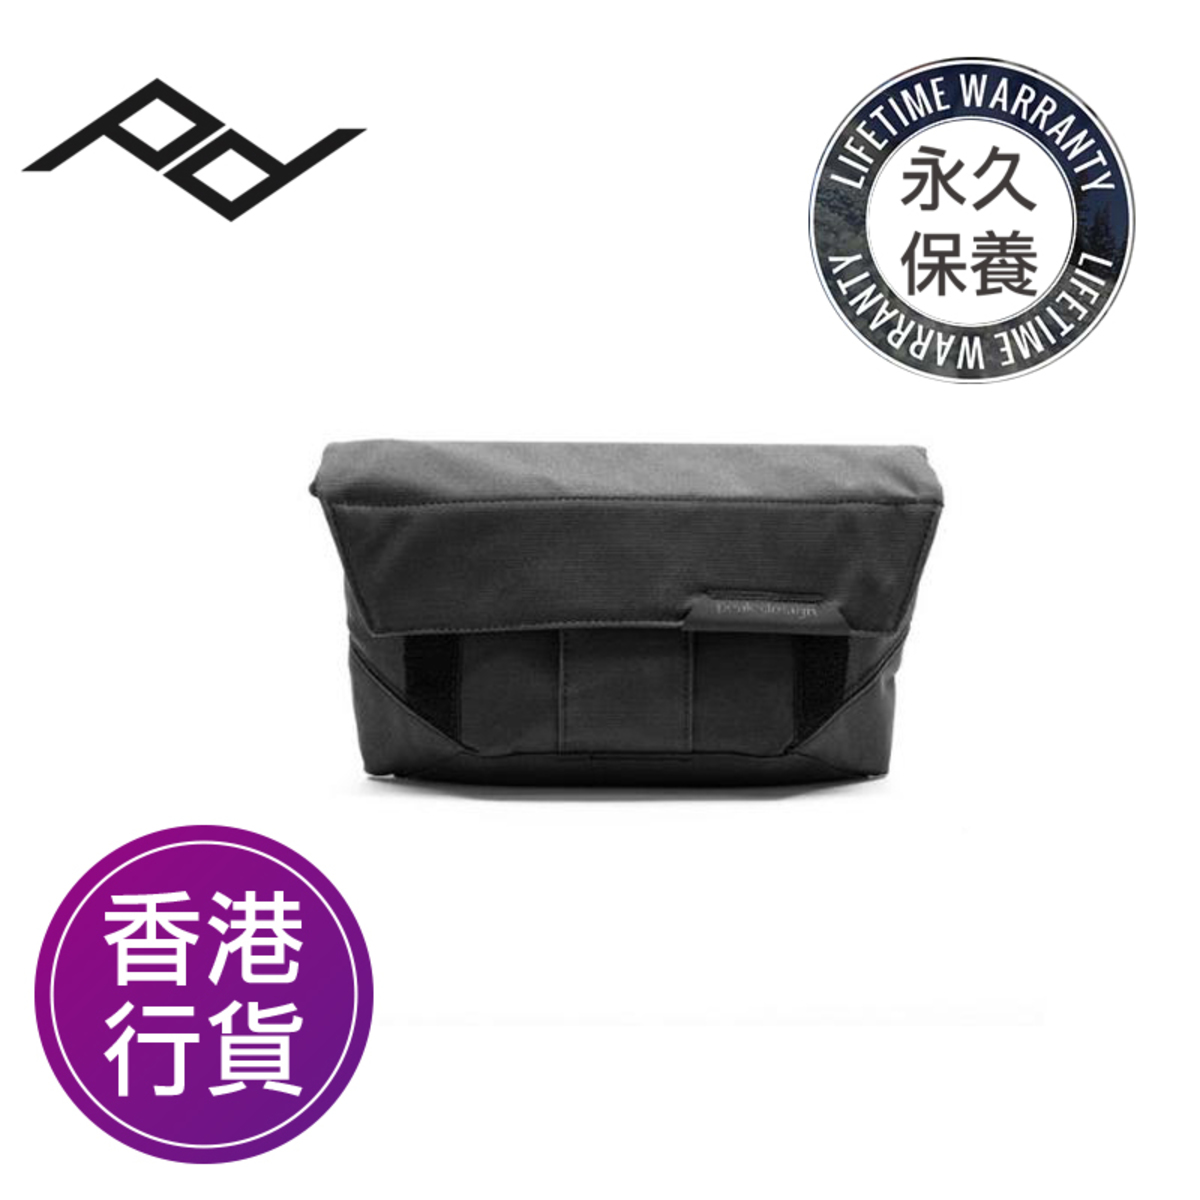 FIELD POUCH - 多用途相機收納包 BLACK